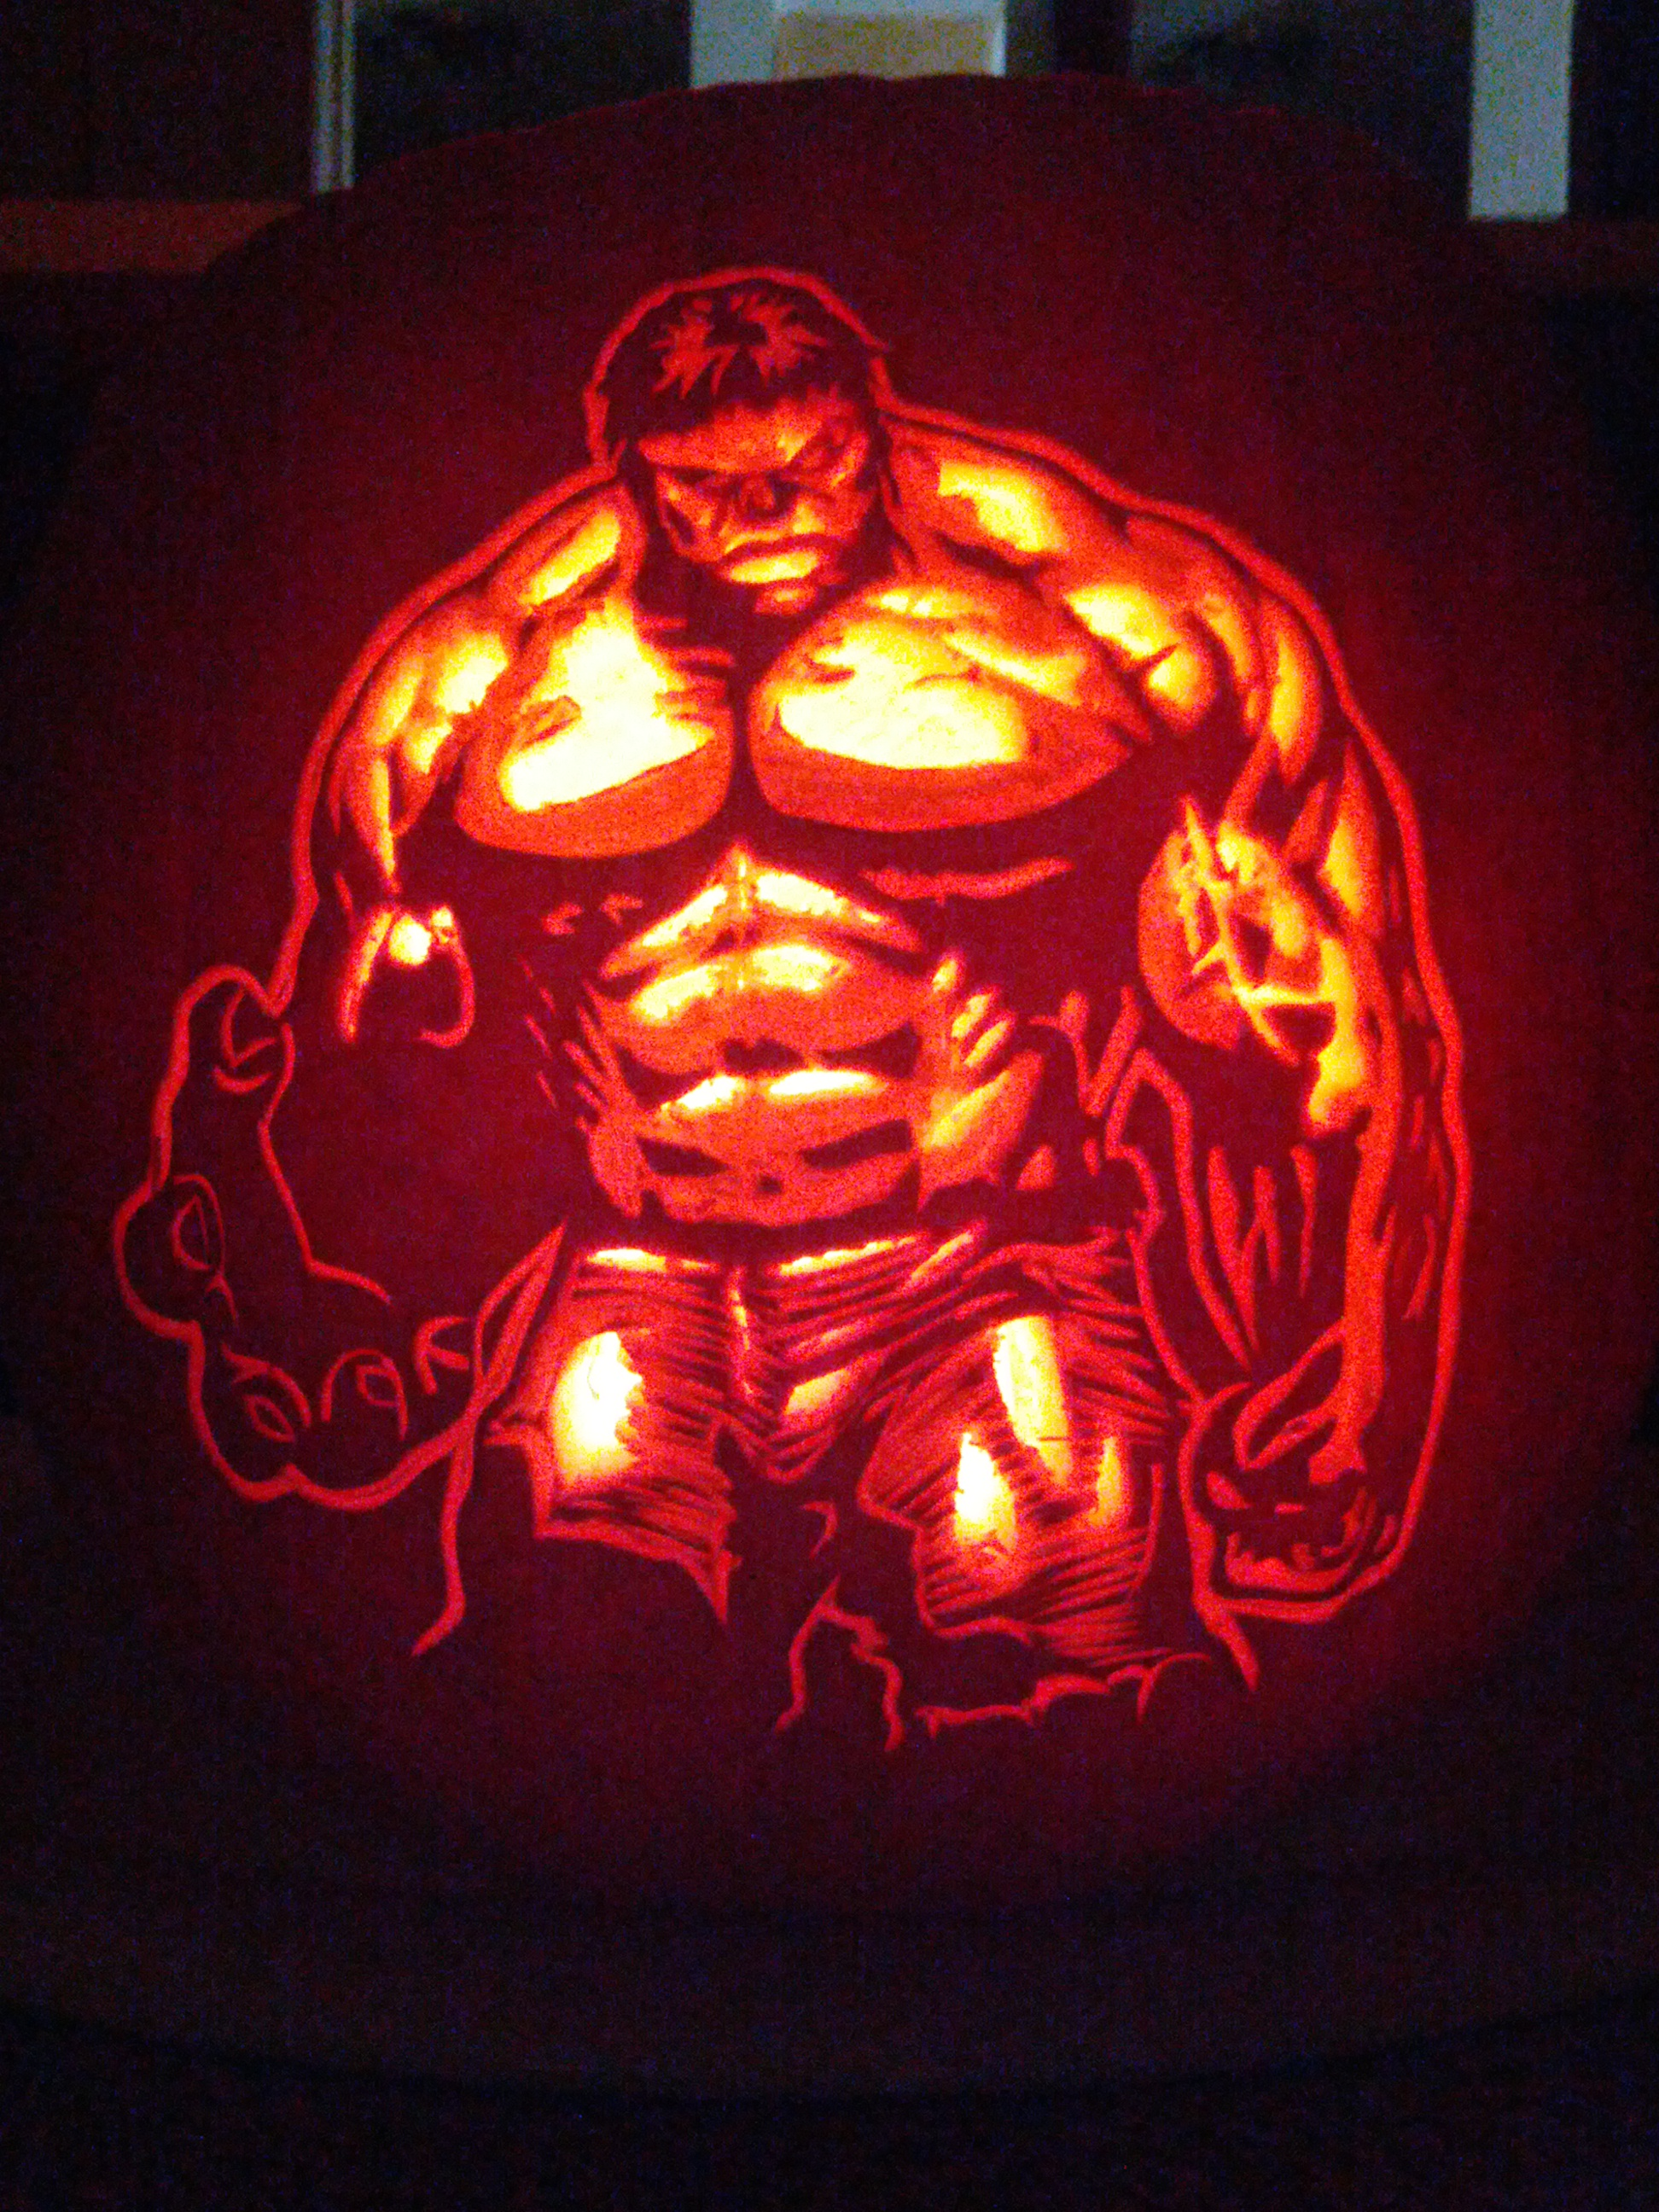 Hulk smash the carving